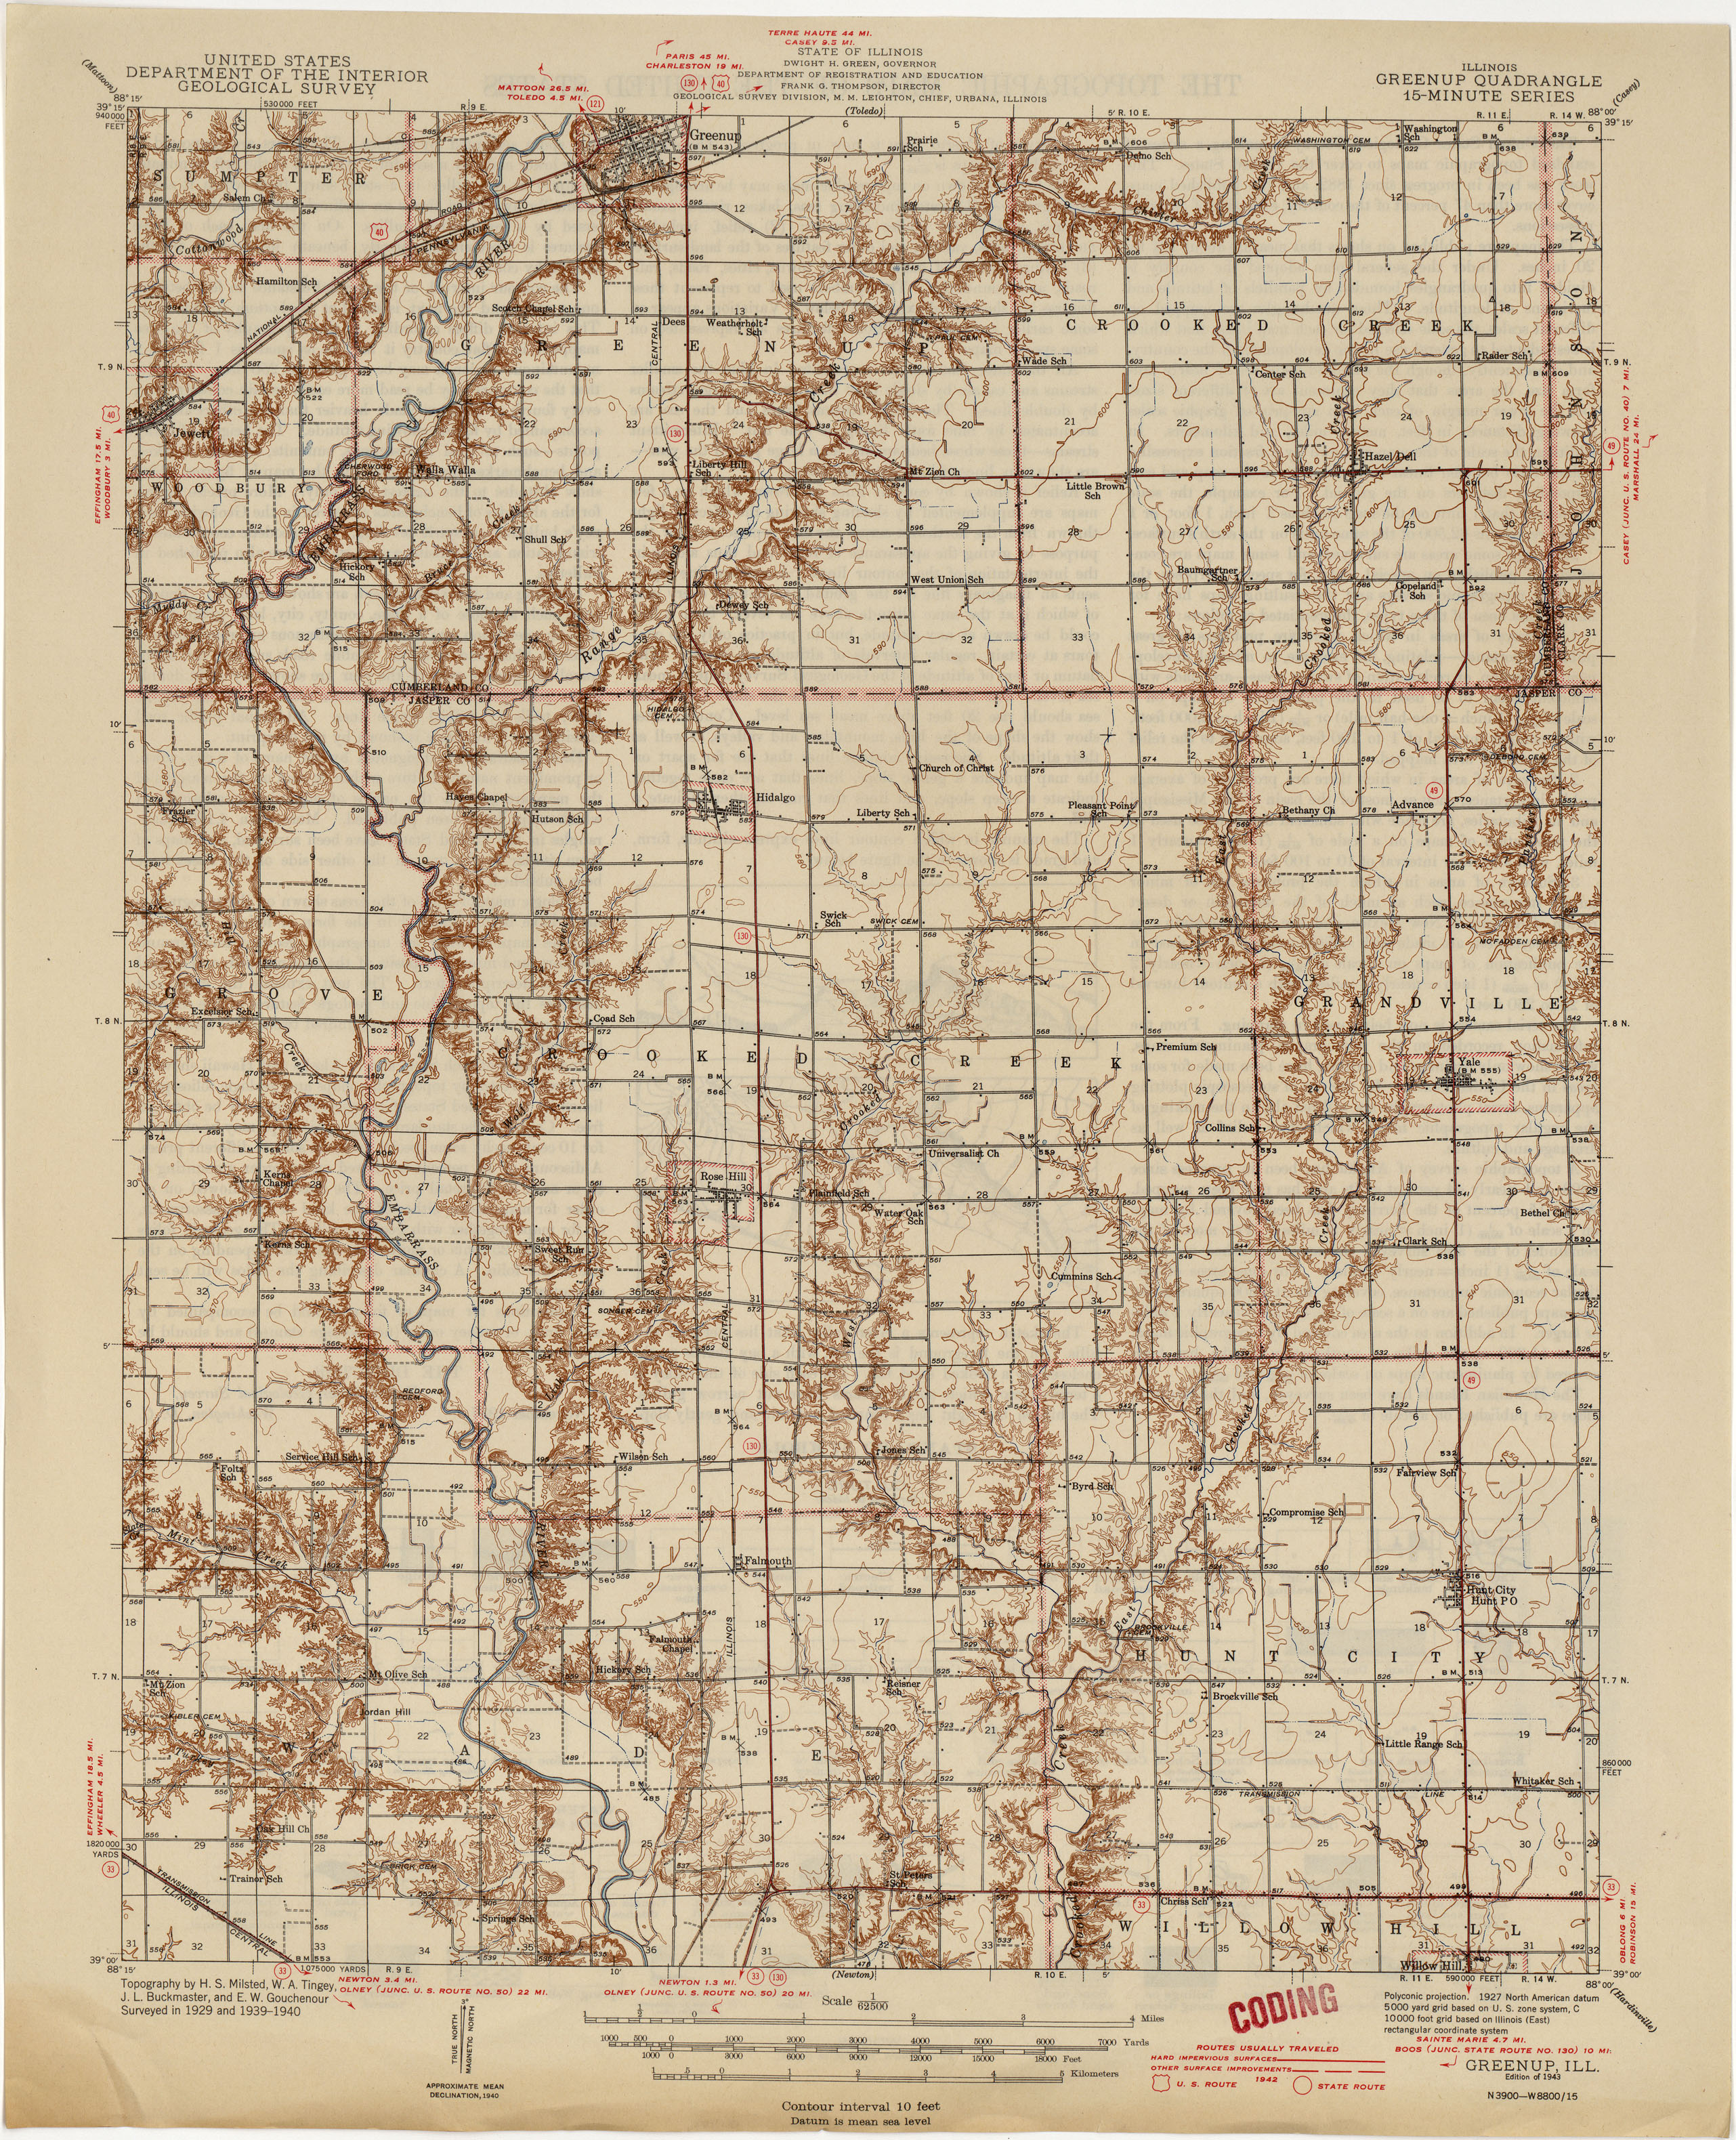 Illinois Historical Topographic Maps Perry Castaneda Map